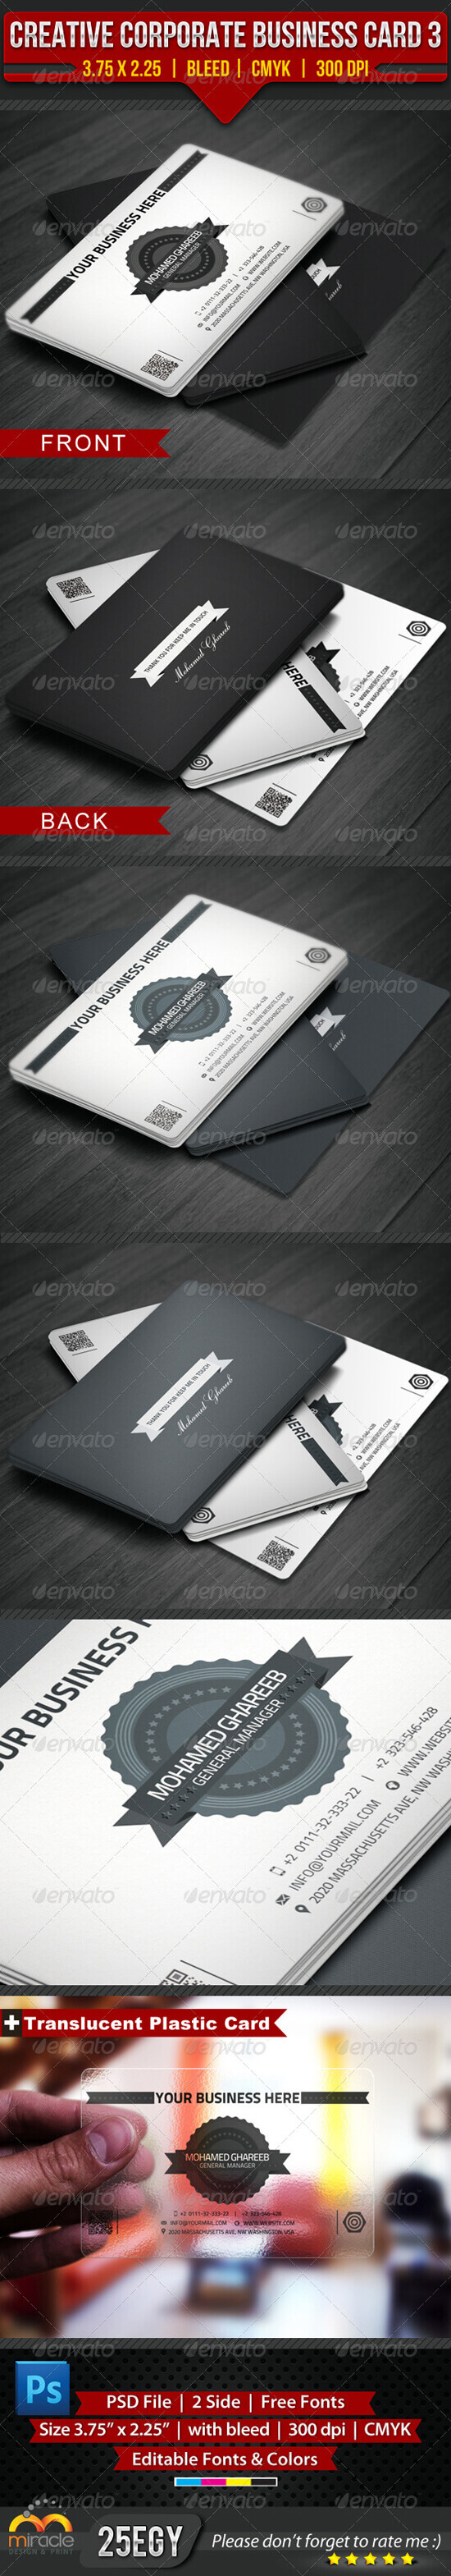 Creative Corporate Business Card 3 by EgYpToS